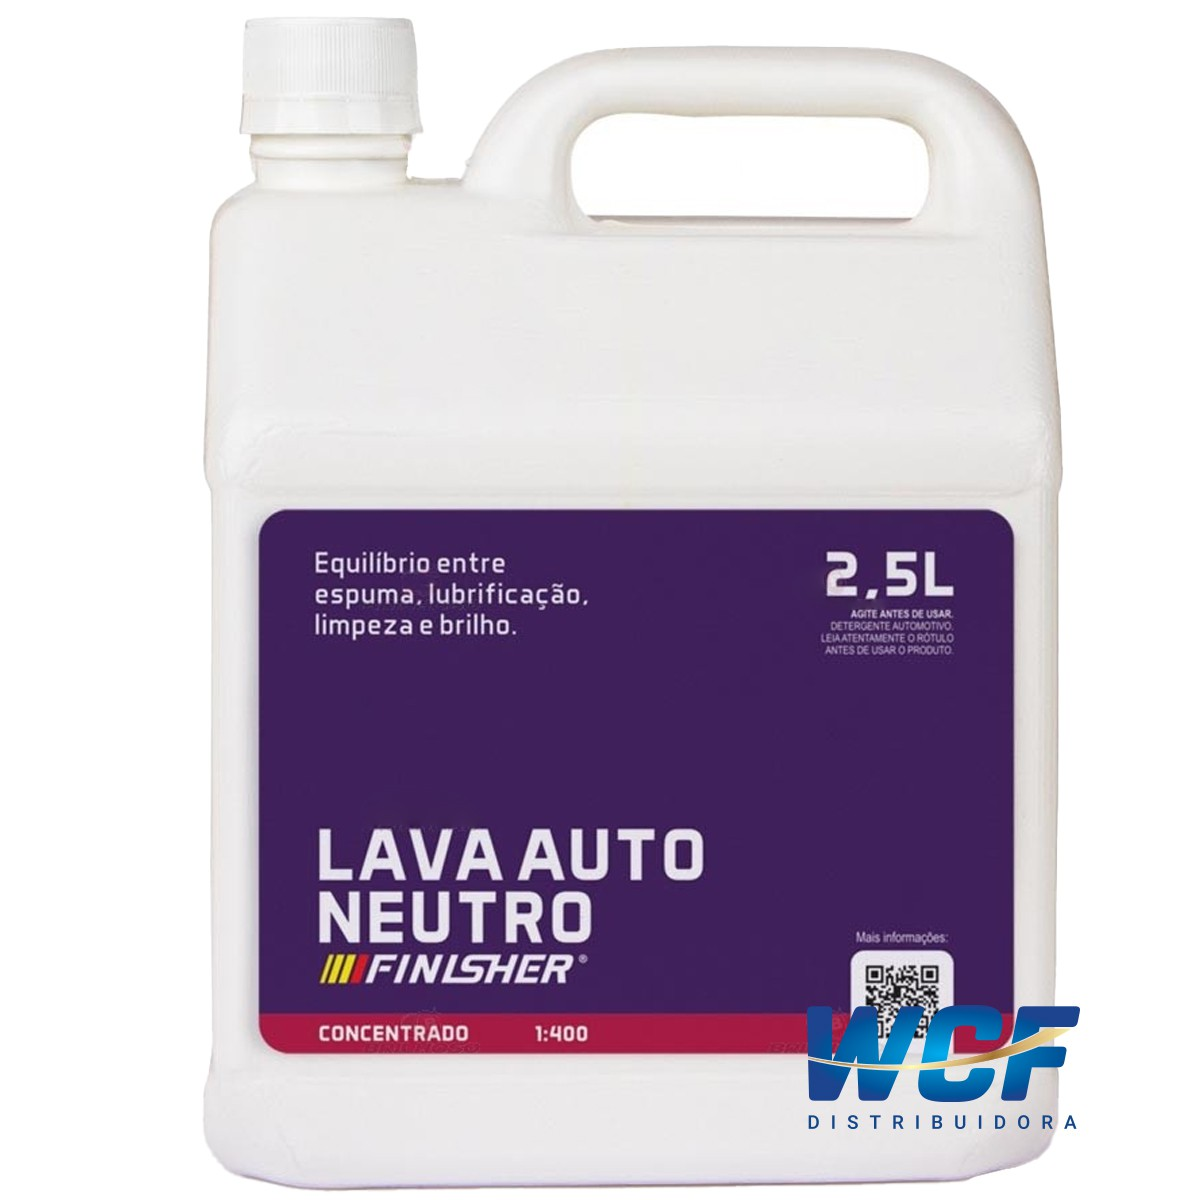 LAVA AUTO NEUTRO 5L FINISHER